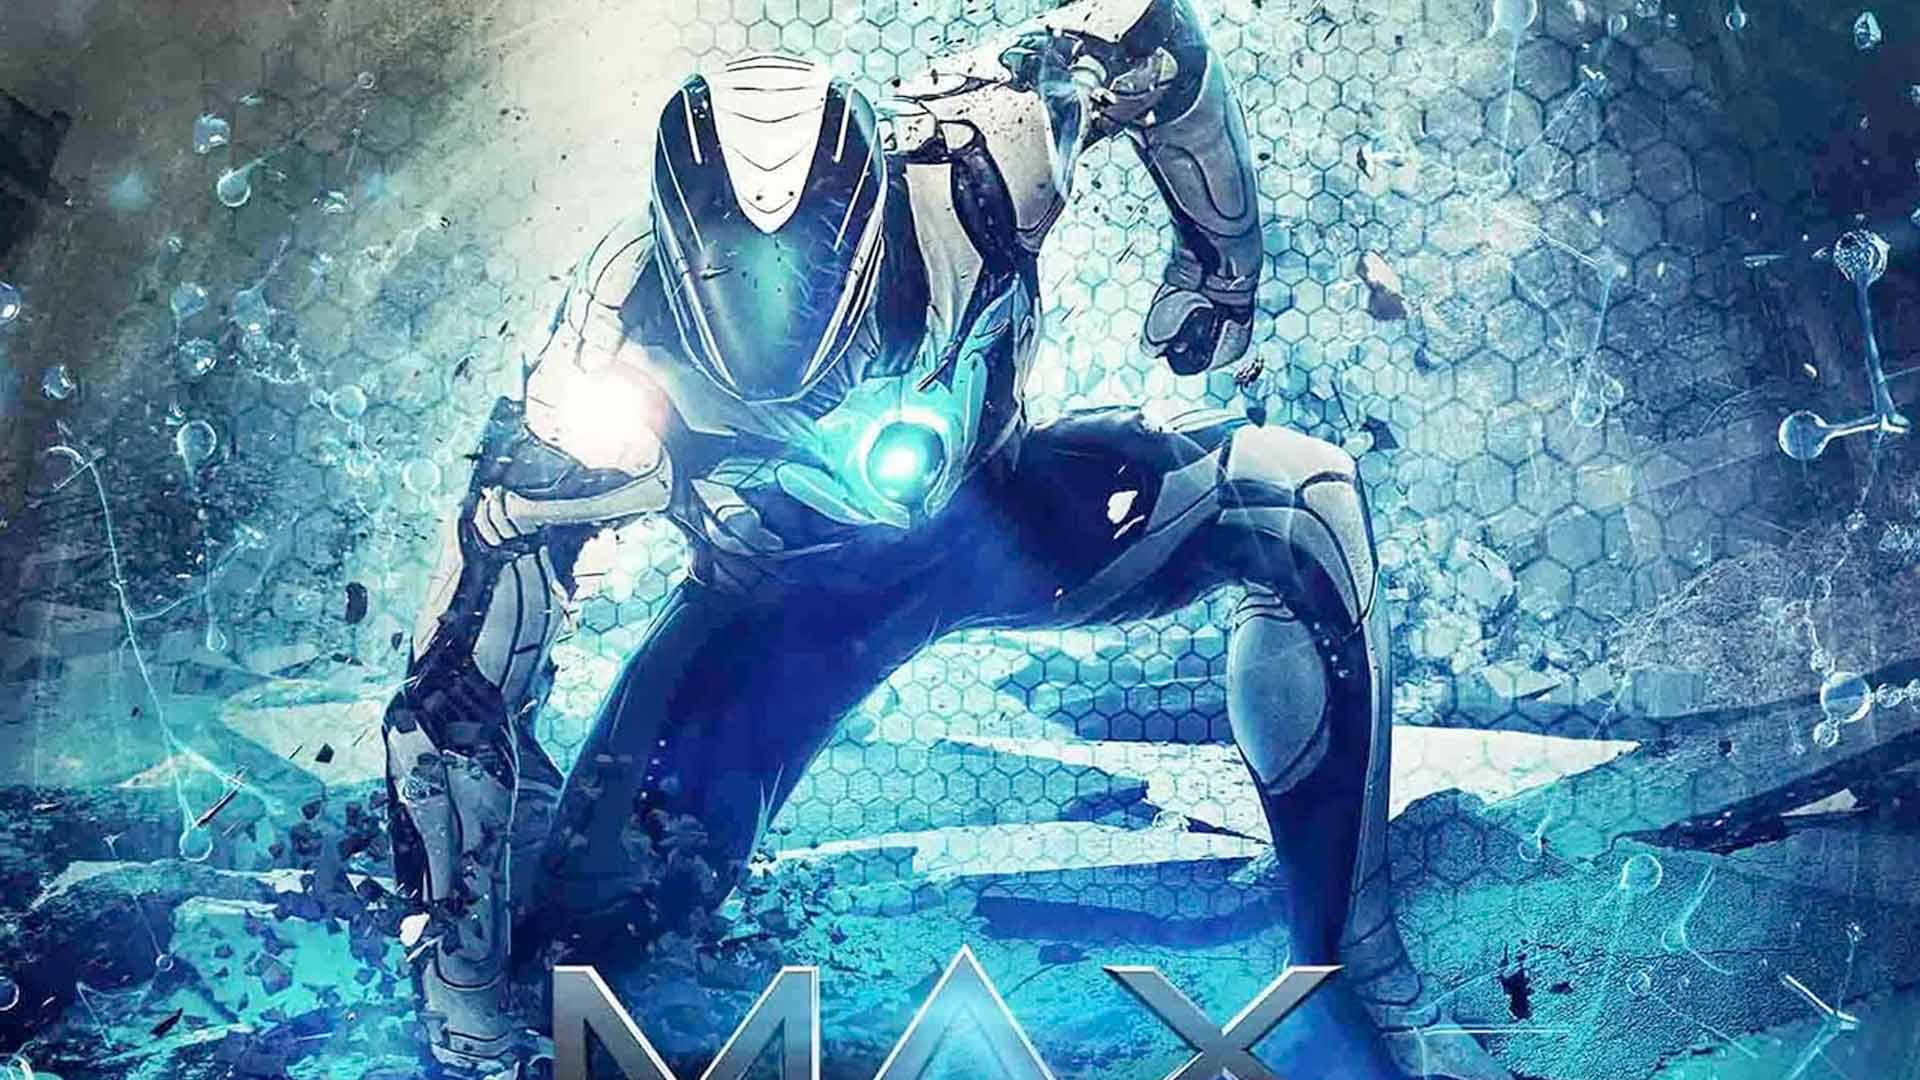 This is an image of Nerdy Max Steel Pictures